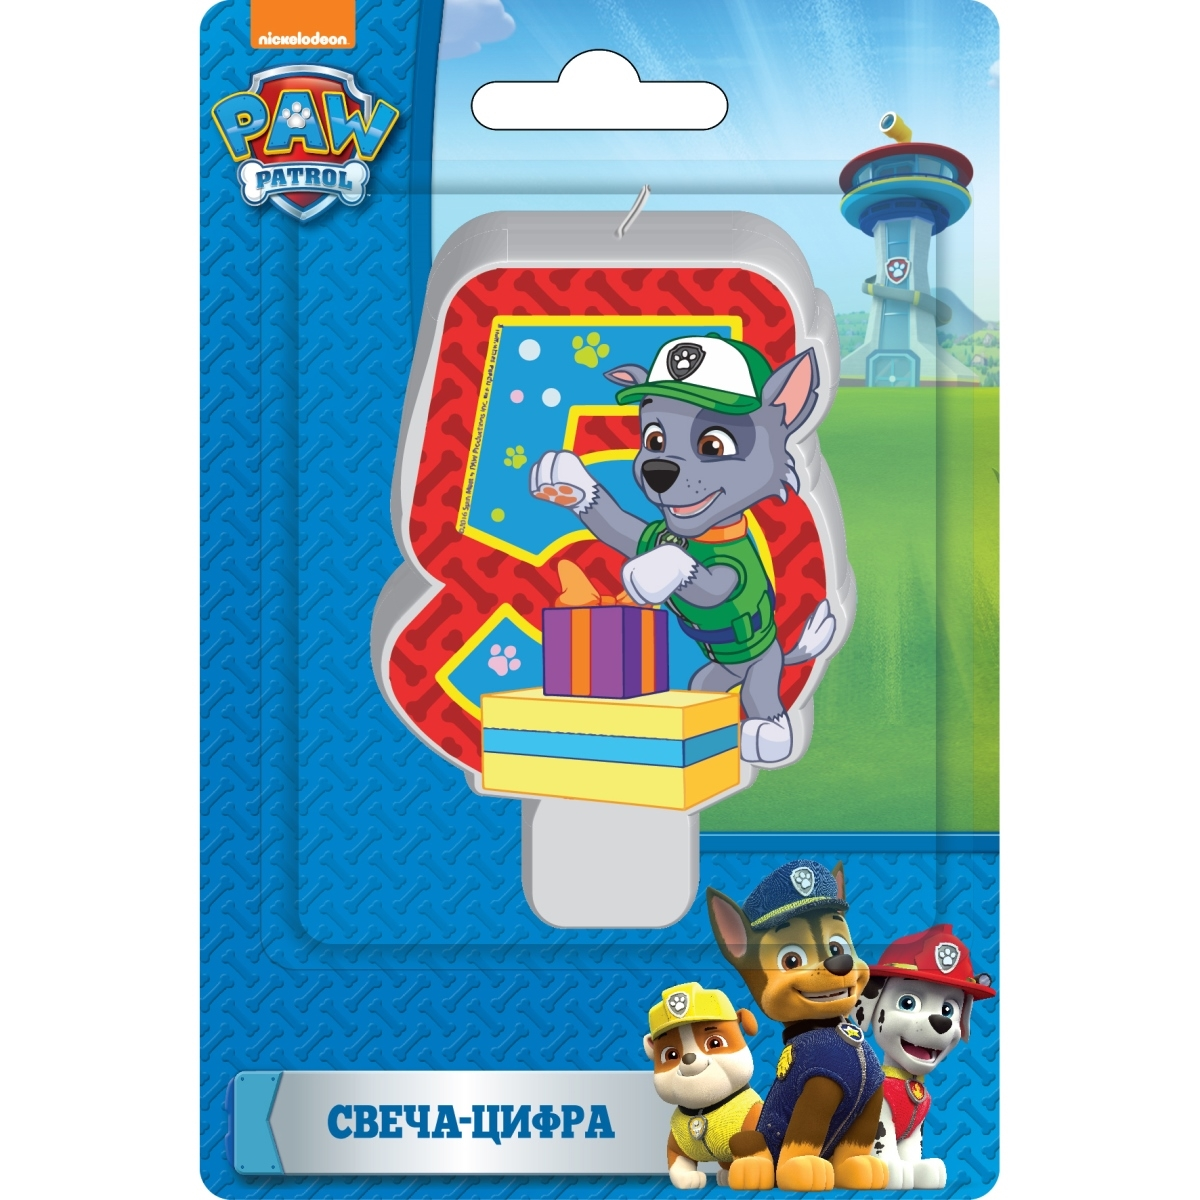 Paw Patrol Paw Patrol Paw Patrol Цифра 5 20cm canine patrol dog toys russian anime doll action figures car patrol puppy toy patrulla canina juguetes gift for child m134